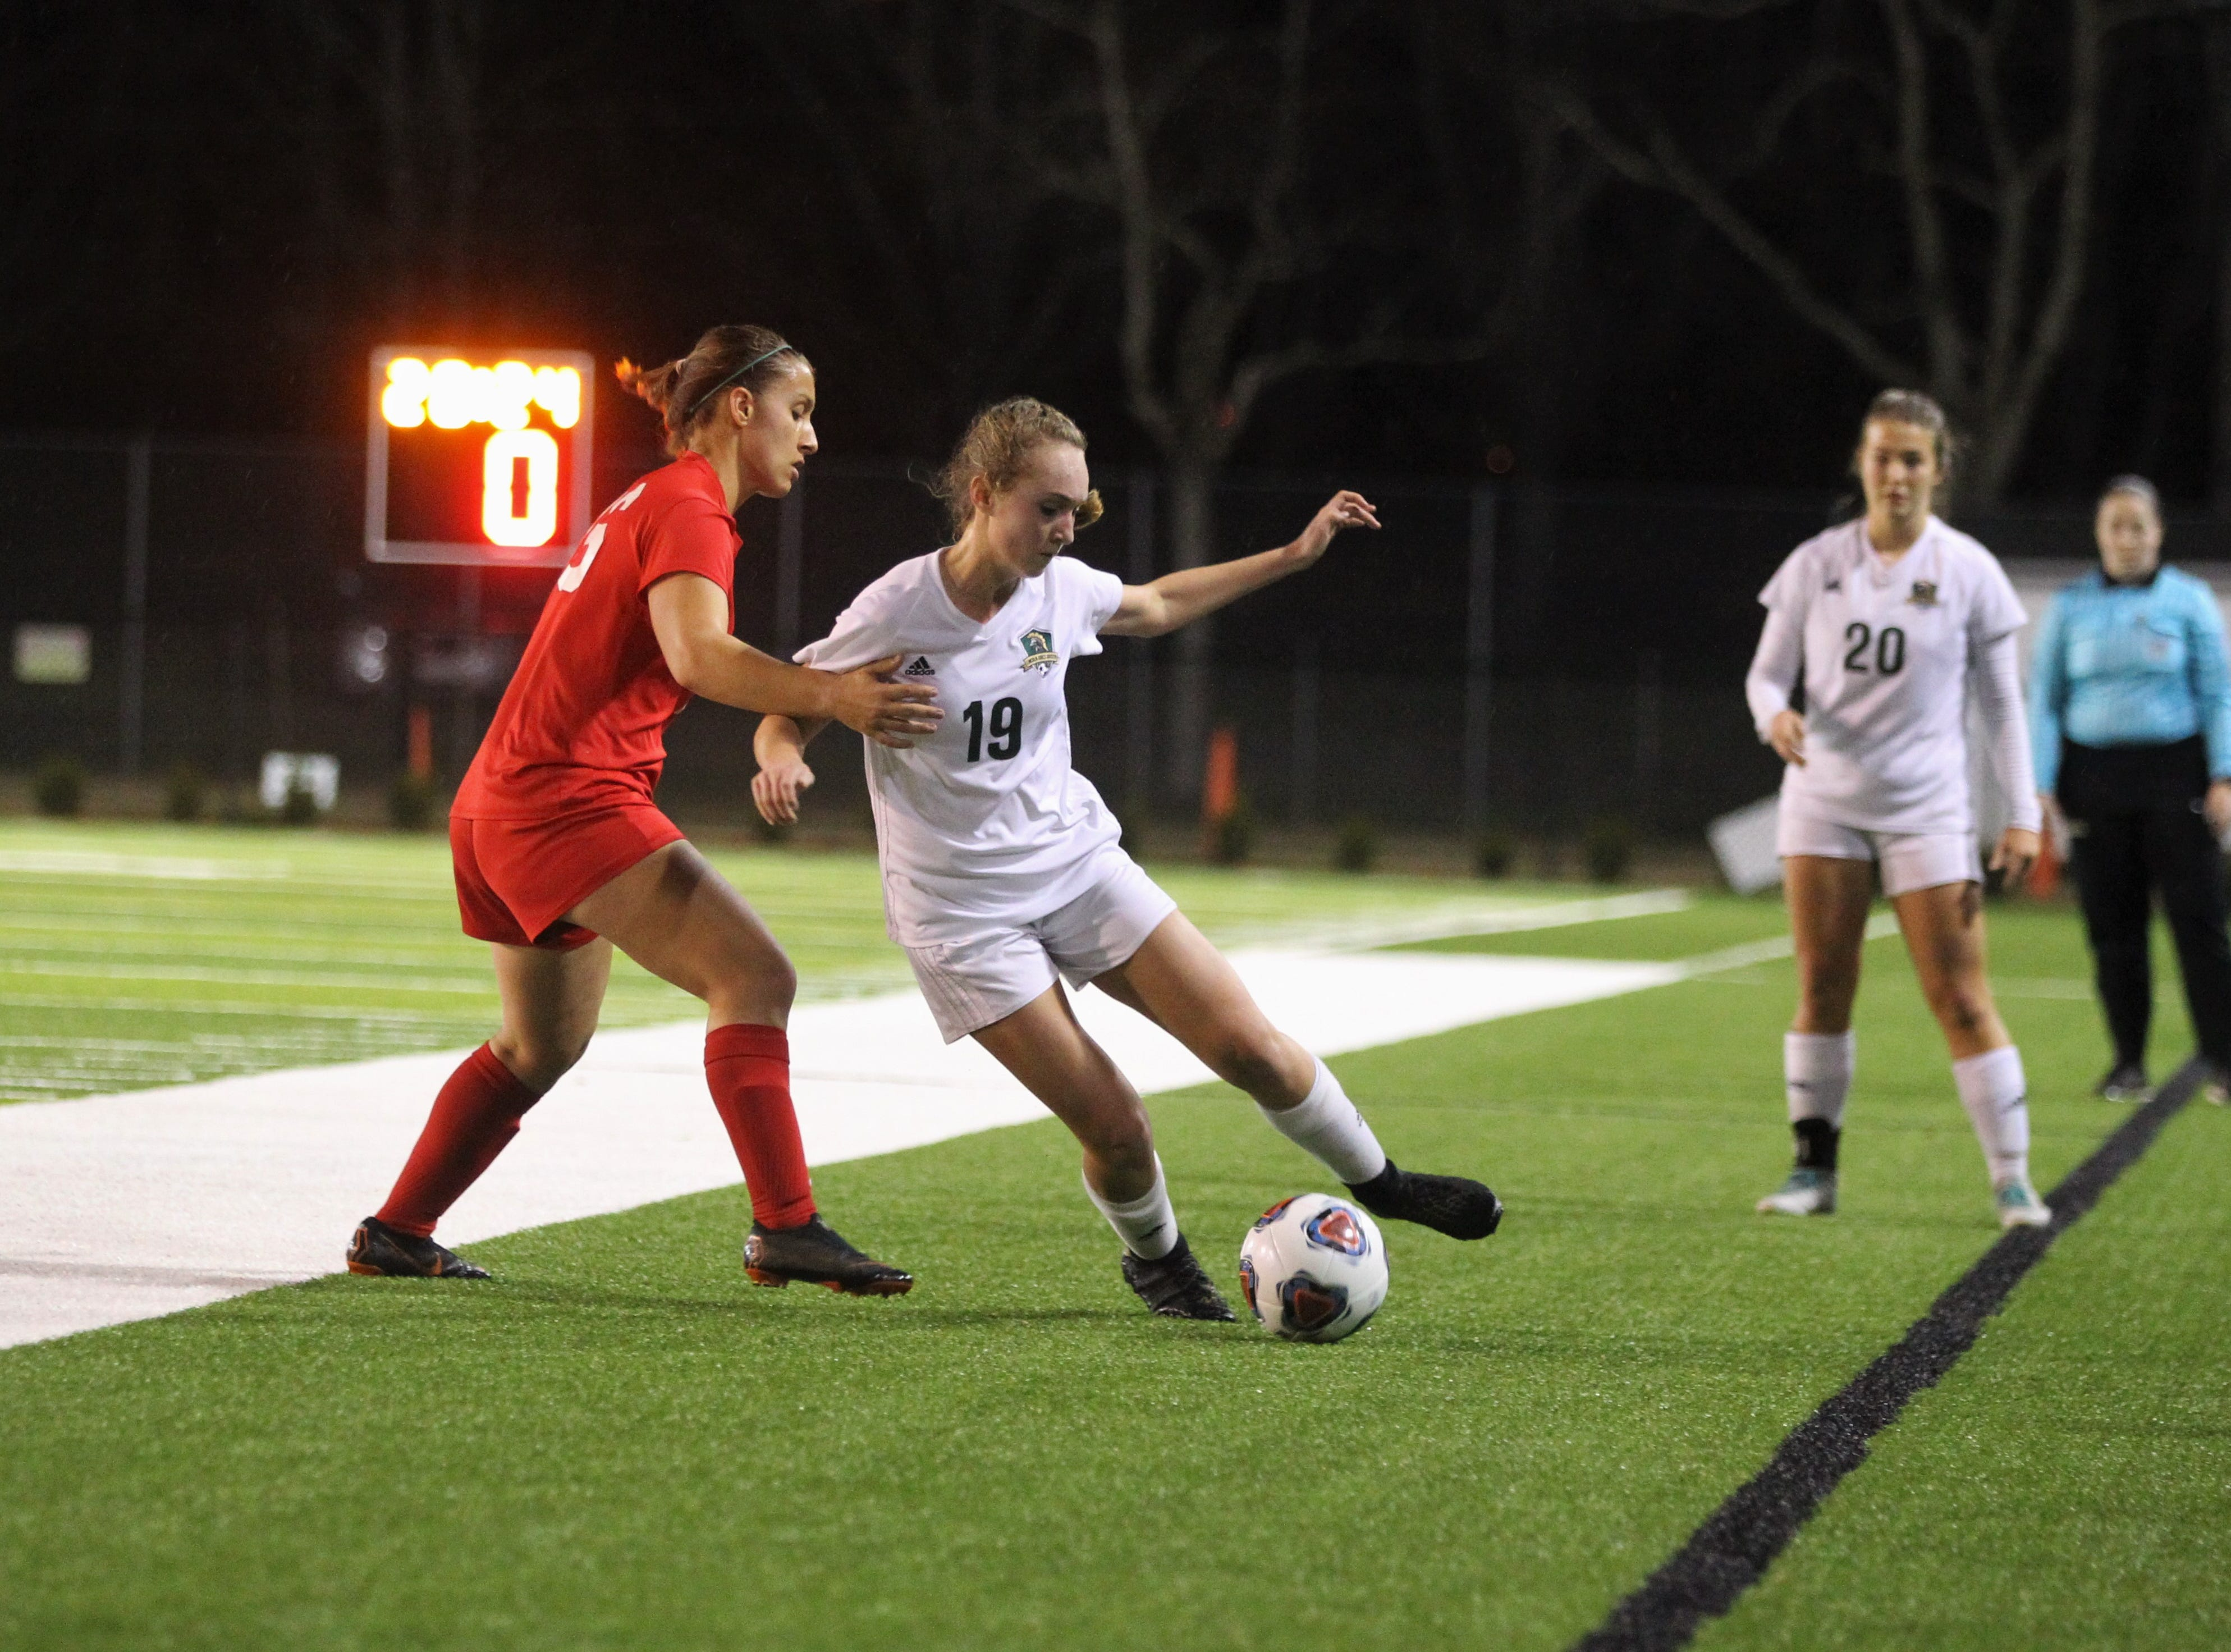 Lincoln midfielder Lexi Gray tries to get pat Leon midfielder Eden Kirn as Leon's girls soccer team beat Lincoln in the District 2-4A championship on Feb. 1, 2019.